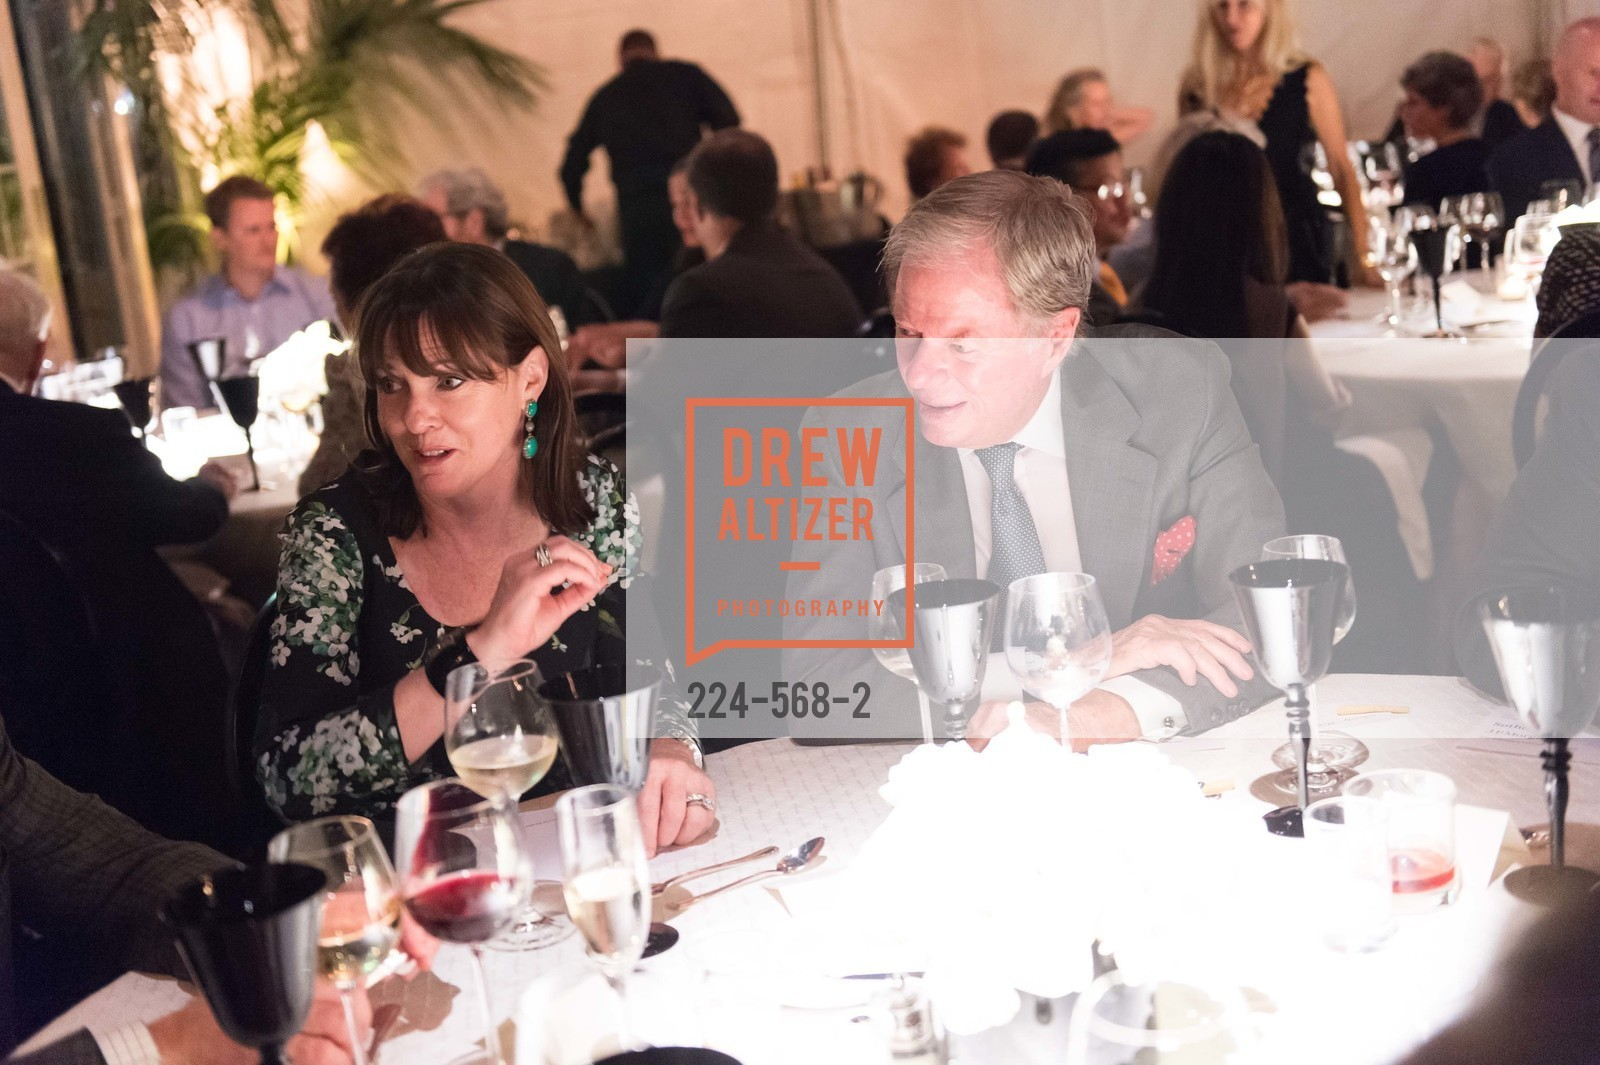 Allison Speer, Sandy Walker, SOTHEBY'S  Hosts a Private Viewing of Highlights from the Collection of MRS. PAUL MELLON, US, September 17th, 2014,Drew Altizer, Drew Altizer Photography, full-service agency, private events, San Francisco photographer, photographer california